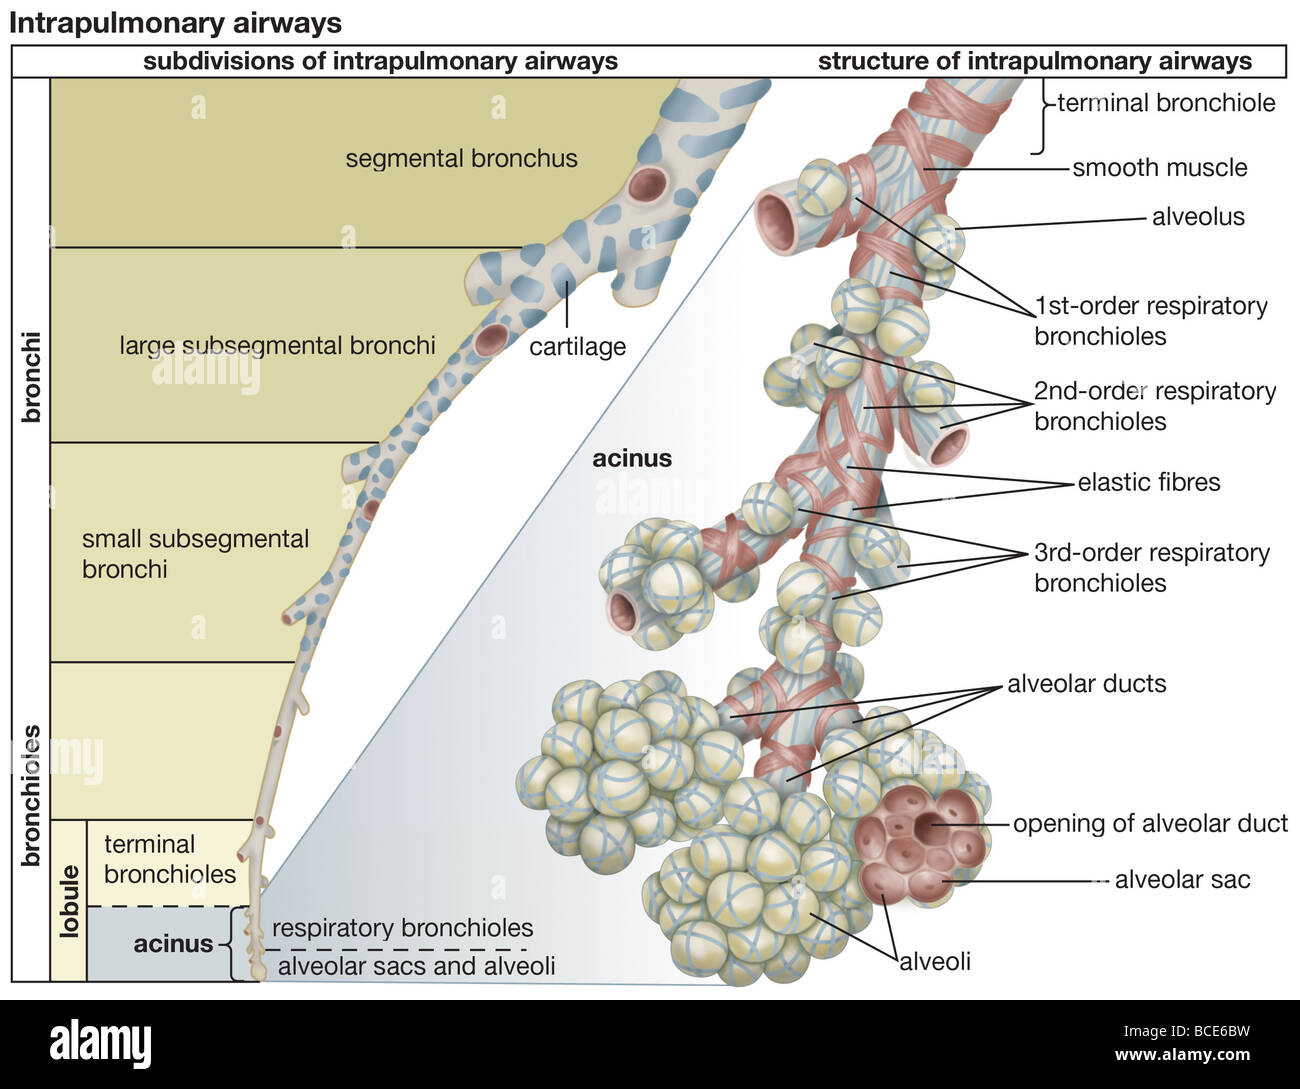 The subdivisions and structure of the human intrapulmonary airways ...